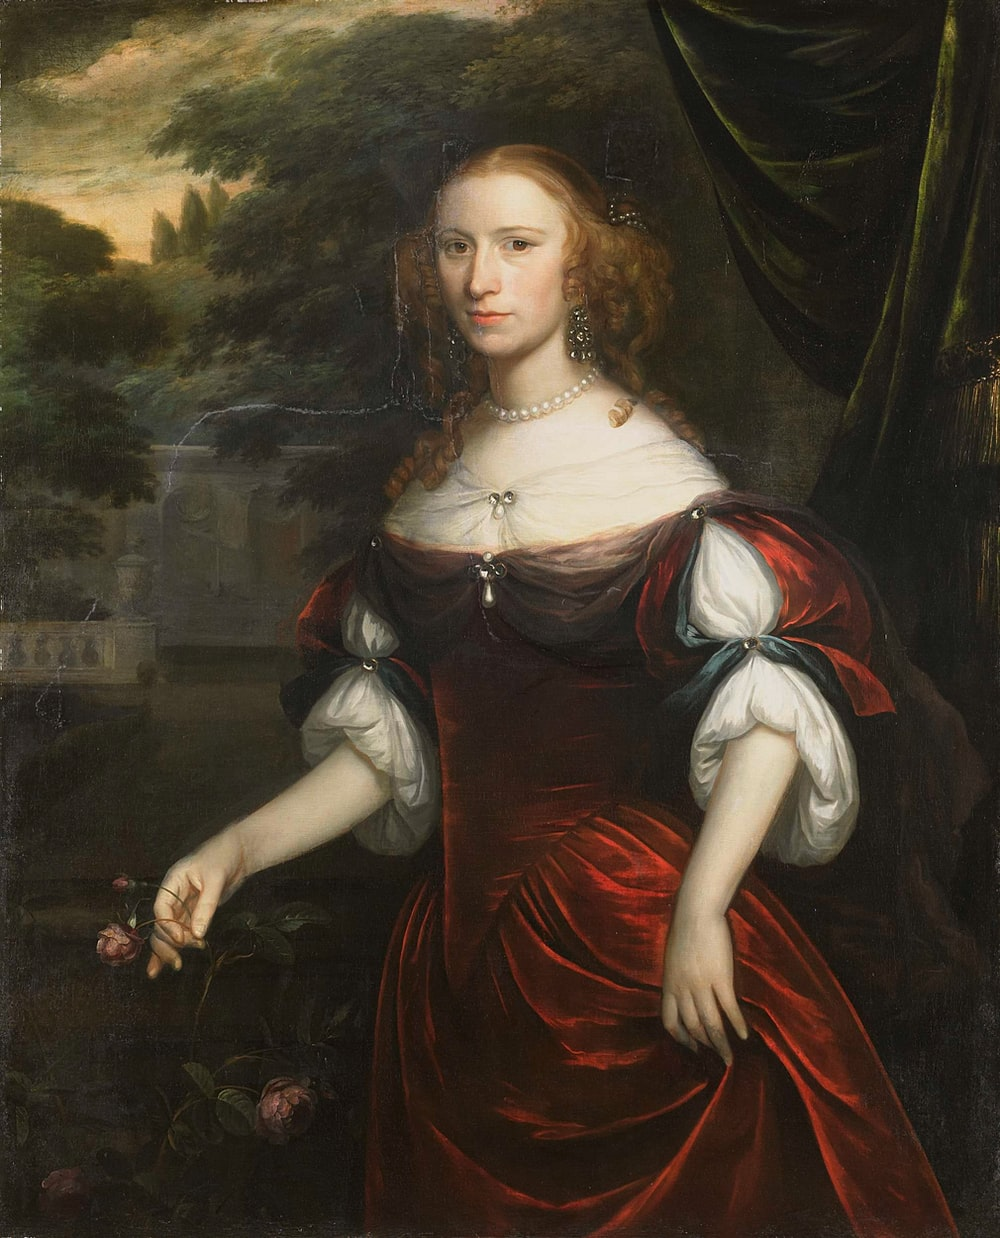 woman in red and black dress painting